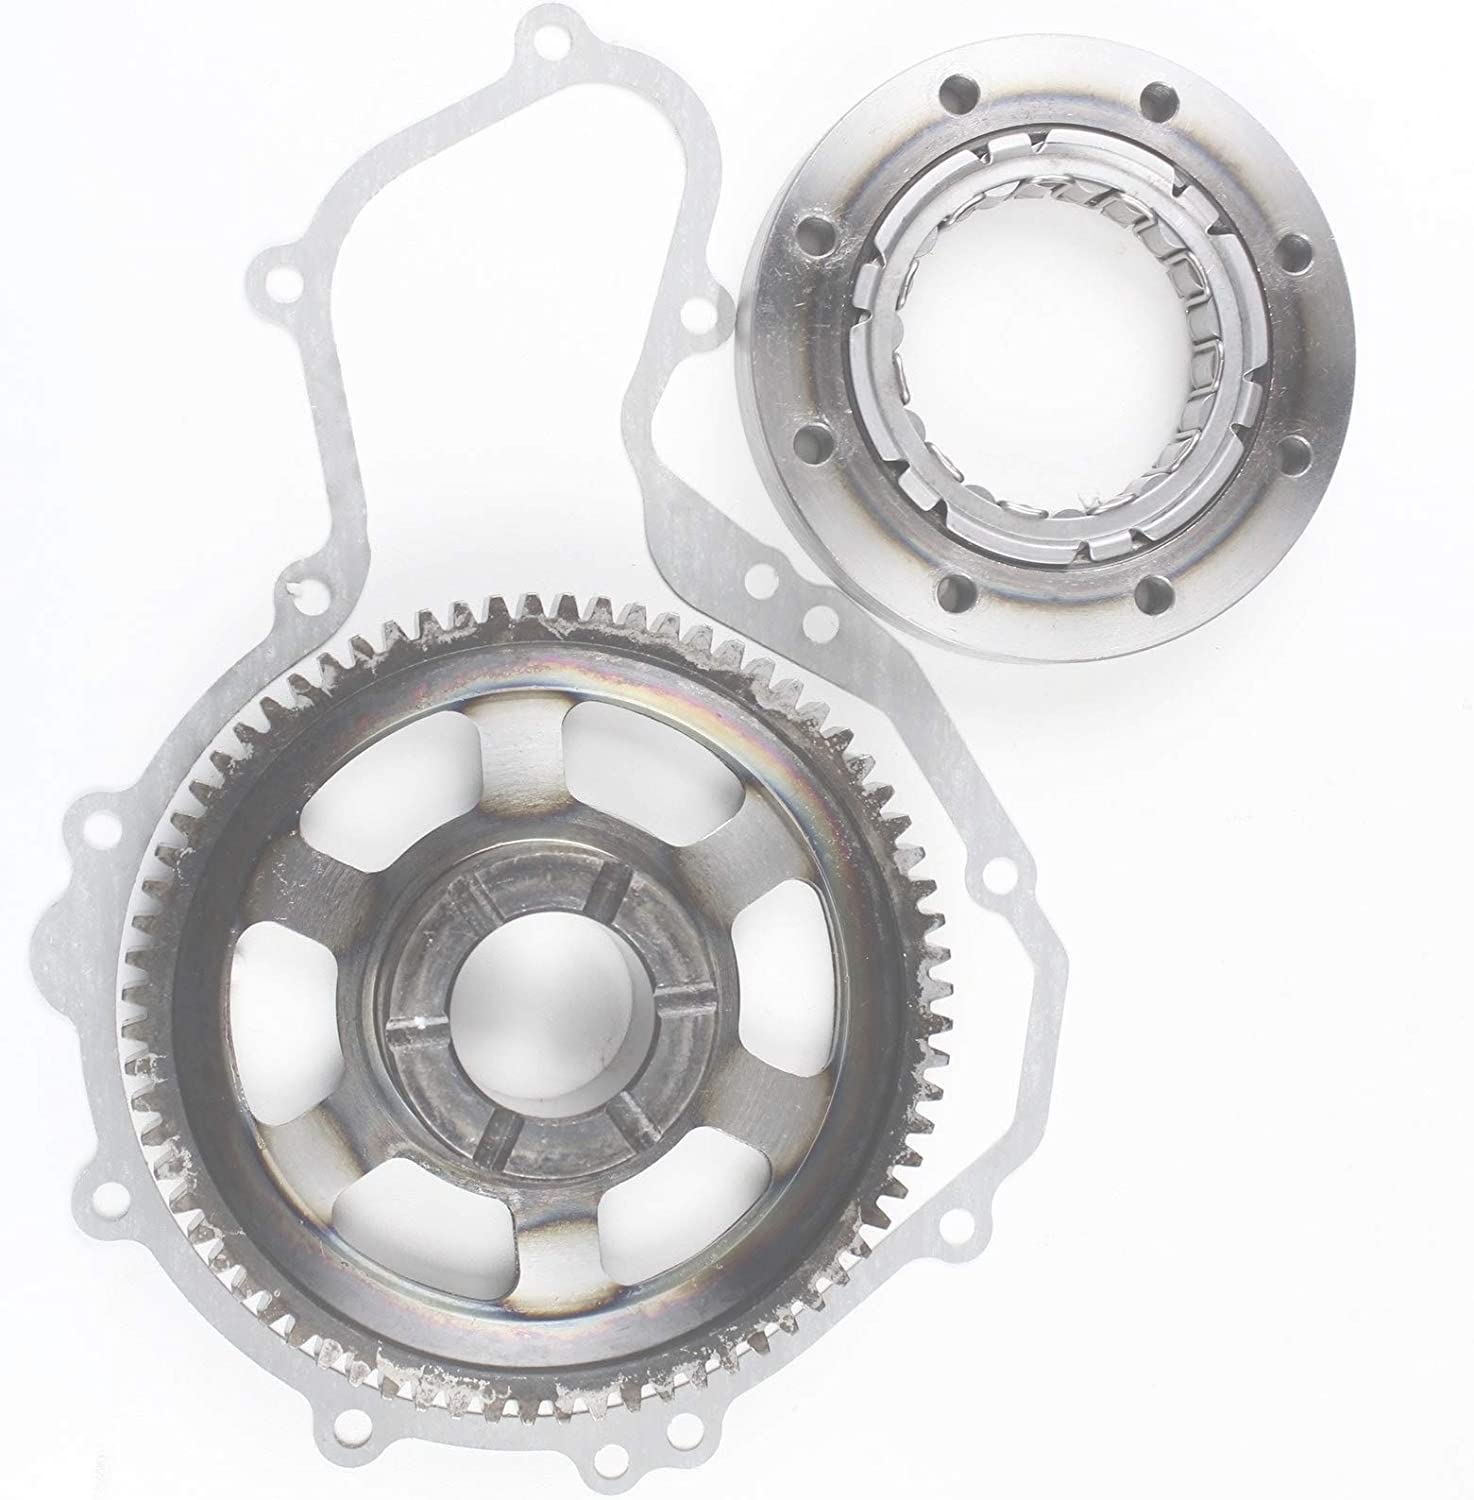 Polaris Predator 500 2003-2007 Clutch Kit NEW